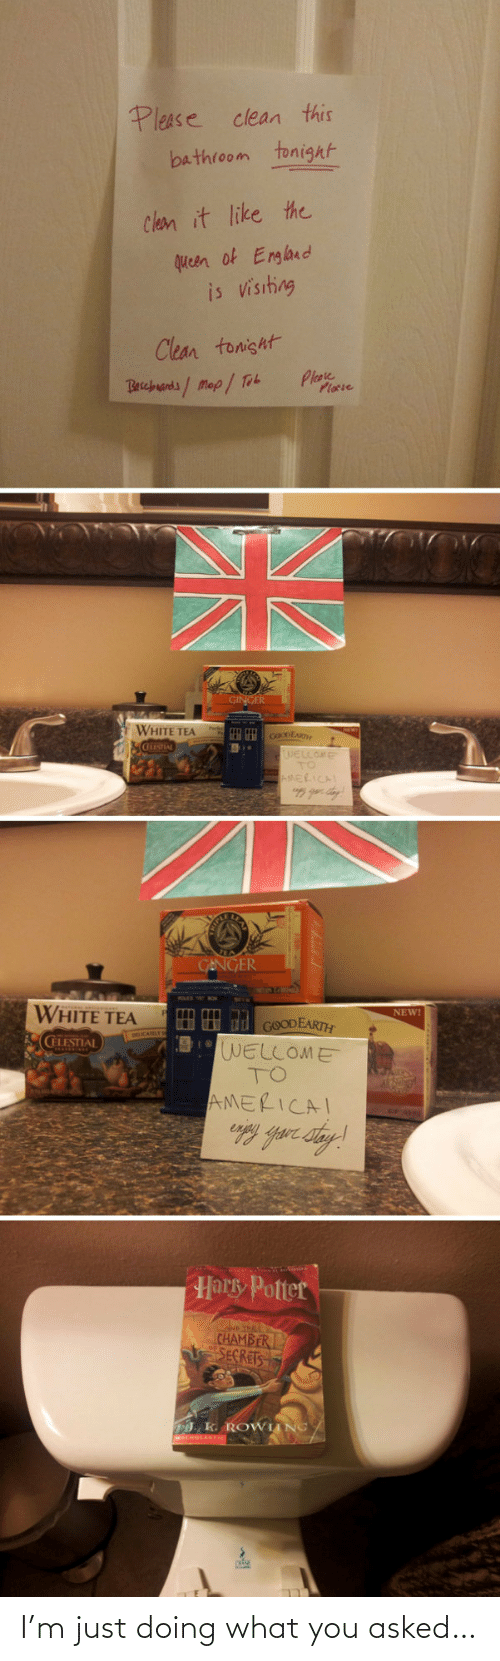 D: Please clean this  bathroom tonight  Clean it like the  queen of England  is visiting  Clean tonisht  Plase  Plocie  Becbuands/Map/ Tob  GINGER  WHITE TEA  cOoDEAR  WELLOME  TO  AMERICAL  GENGER  WHITE TEA  NEW!  HH d GOODEARTH  WELLOME  TO  CELESTIAL  AMERICAI  Harky Potter  D THE  CHAMBER  SECRETS  . K. ROWIING/ I'm just doing what you asked…